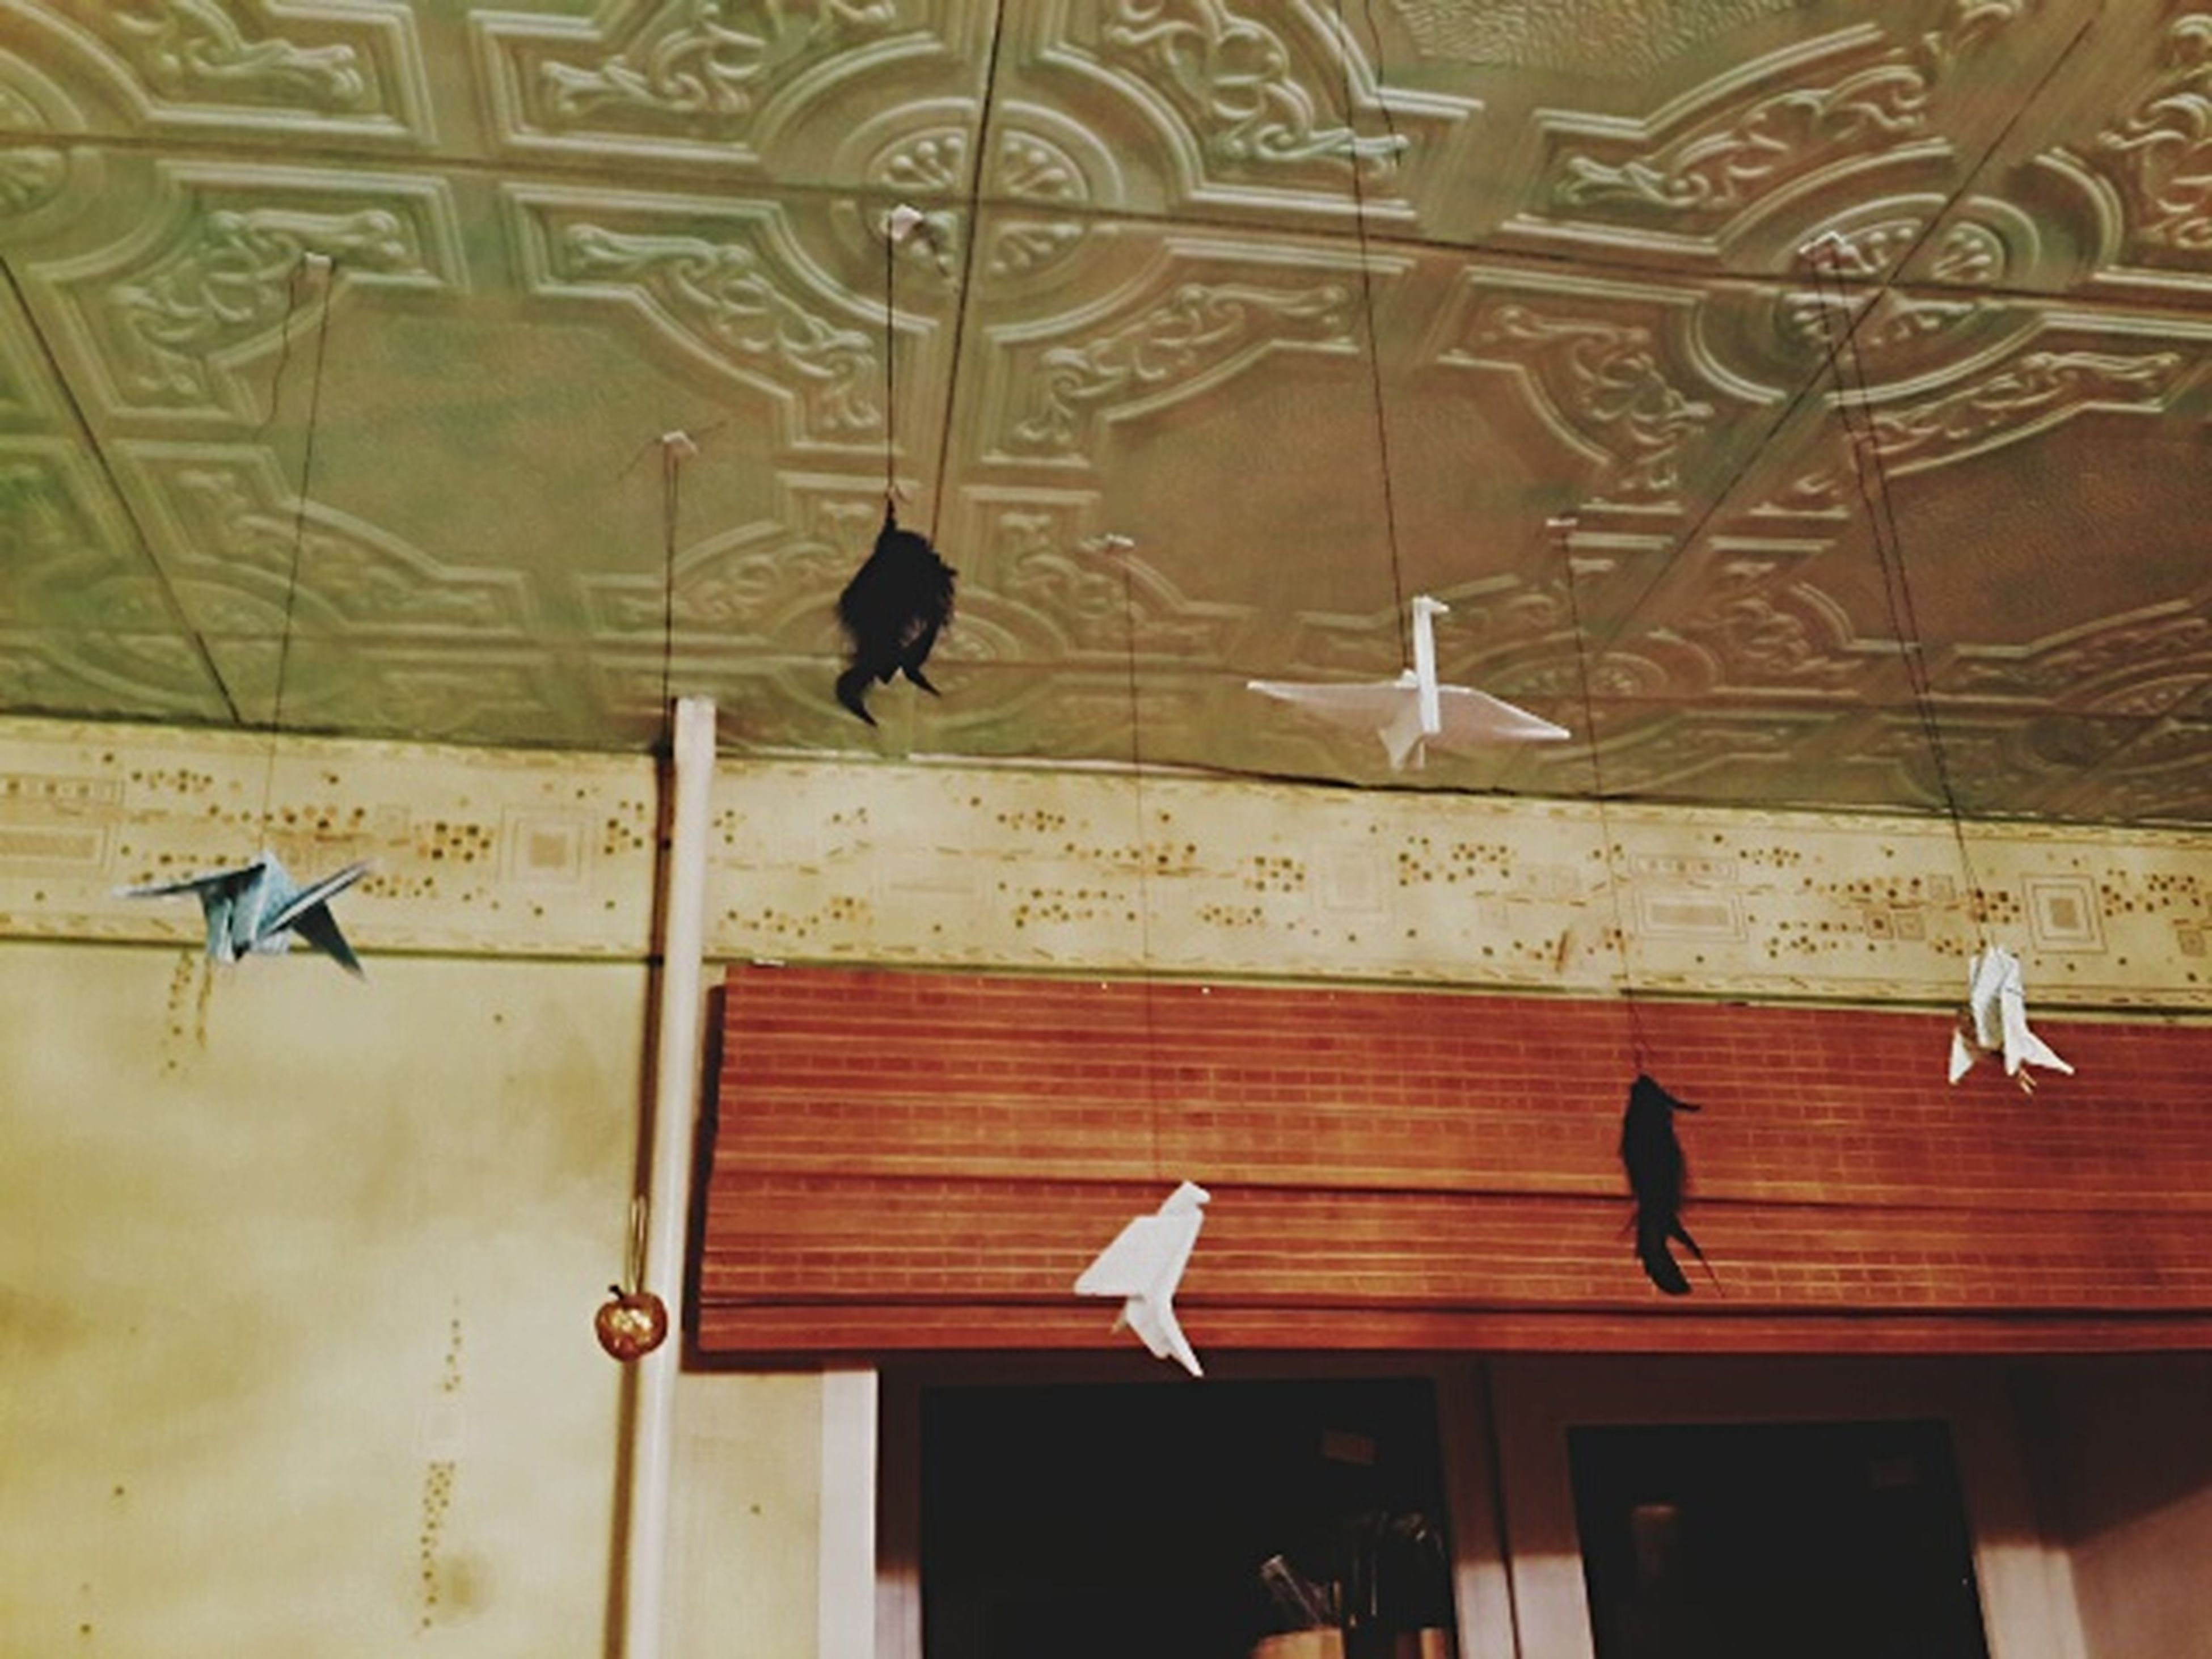 bird, architecture, built structure, animal themes, indoors, hanging, window, animals in the wild, building exterior, wildlife, low angle view, perching, wall - building feature, pigeon, house, flying, glass - material, day, no people